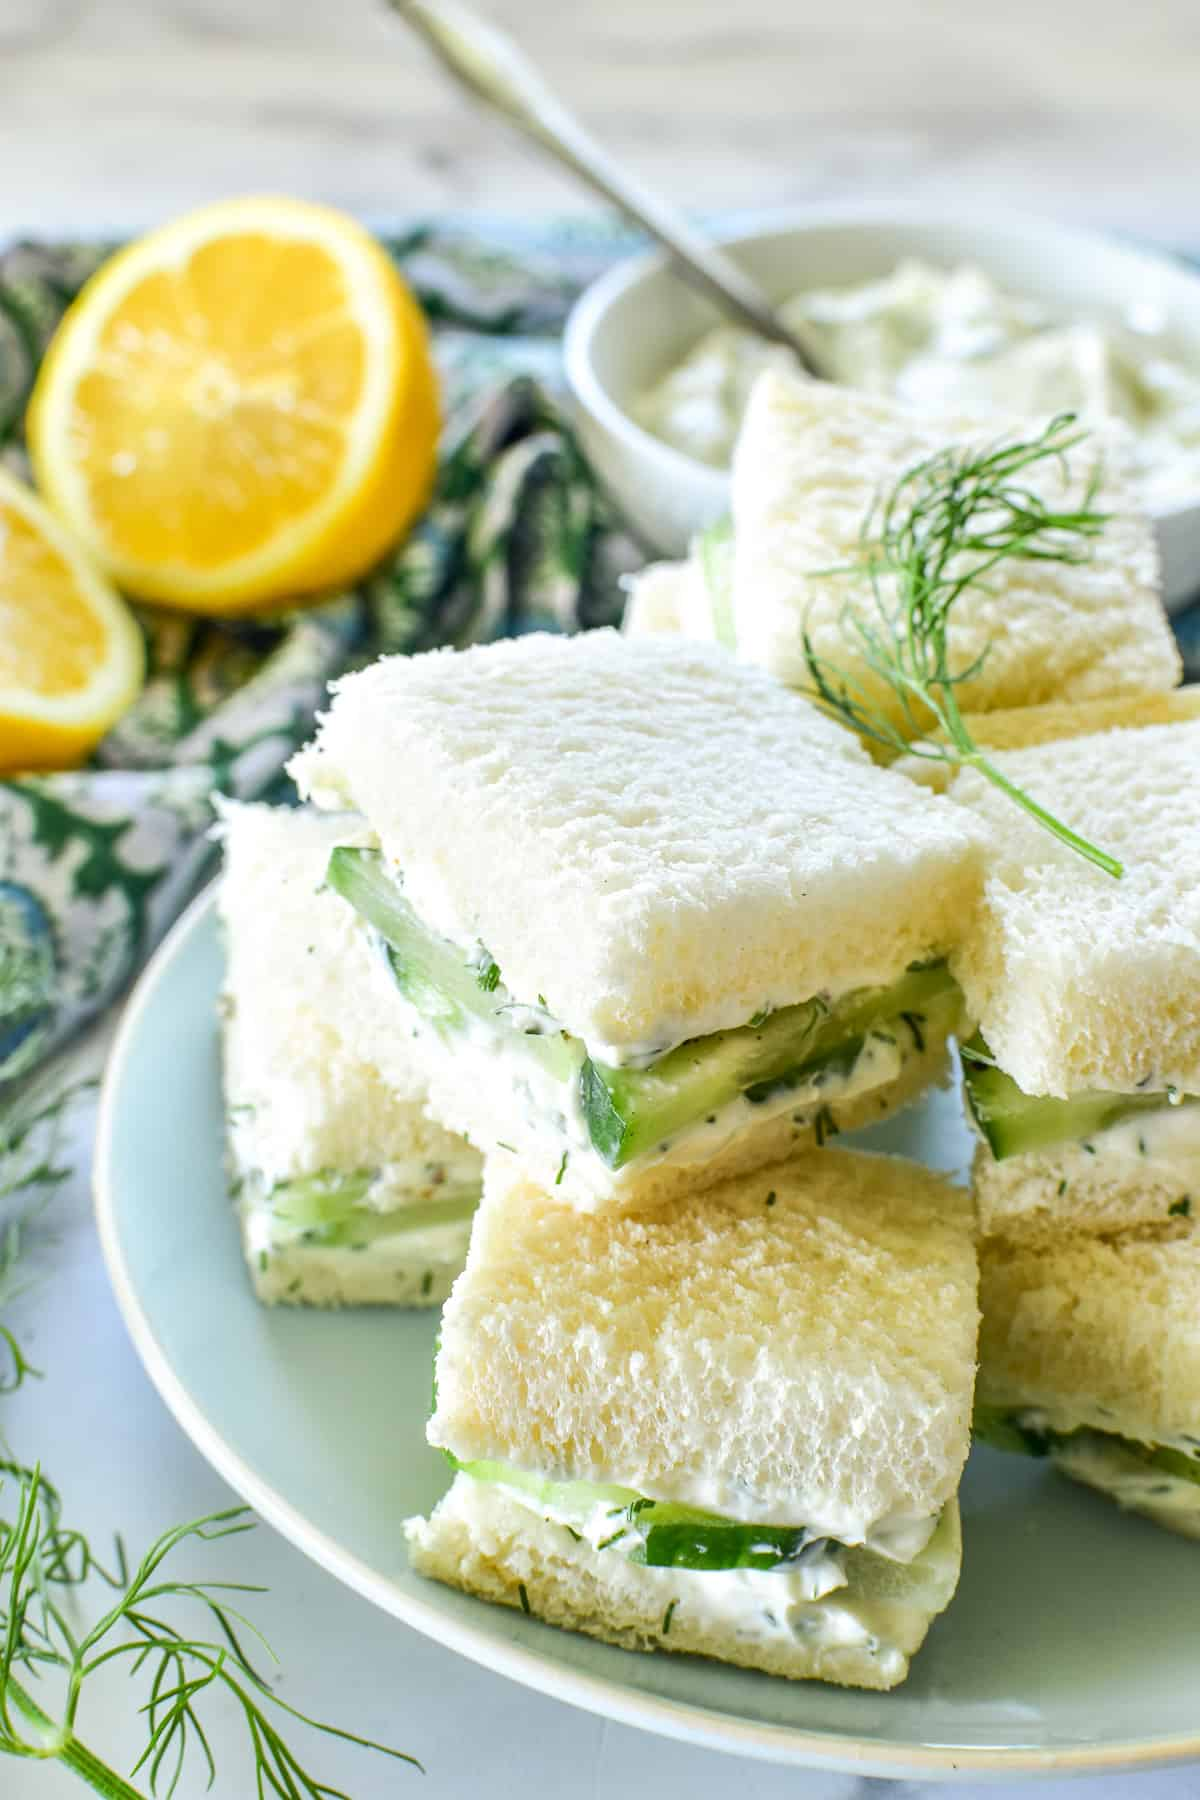 Cucumber Sandwiches cut in squares on a light blue plate